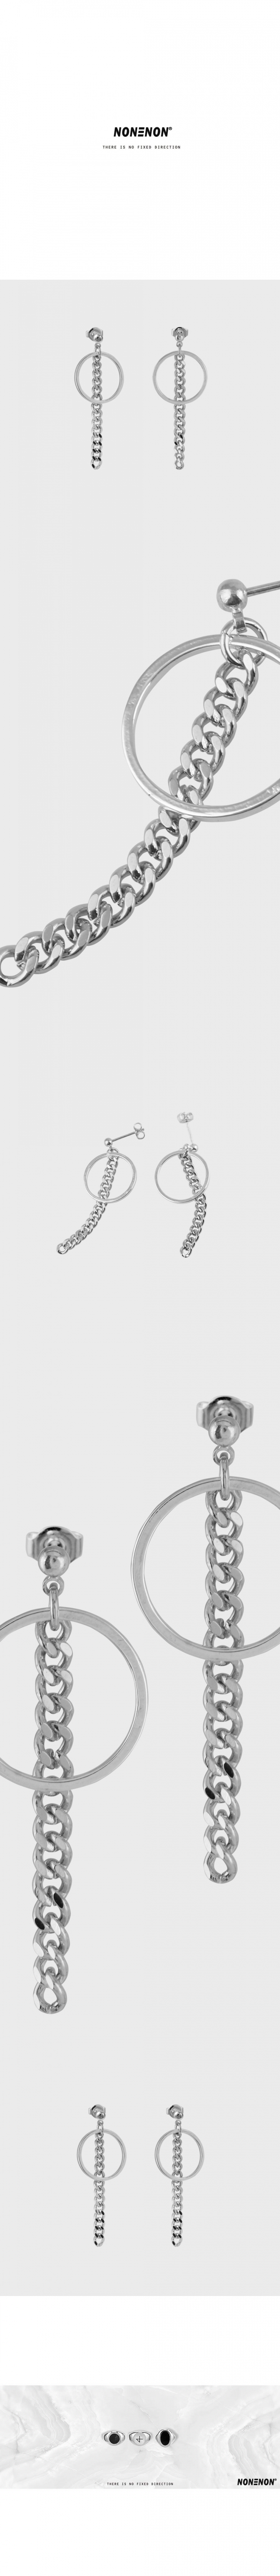 논논(NONENON) RING CHAIN EAR